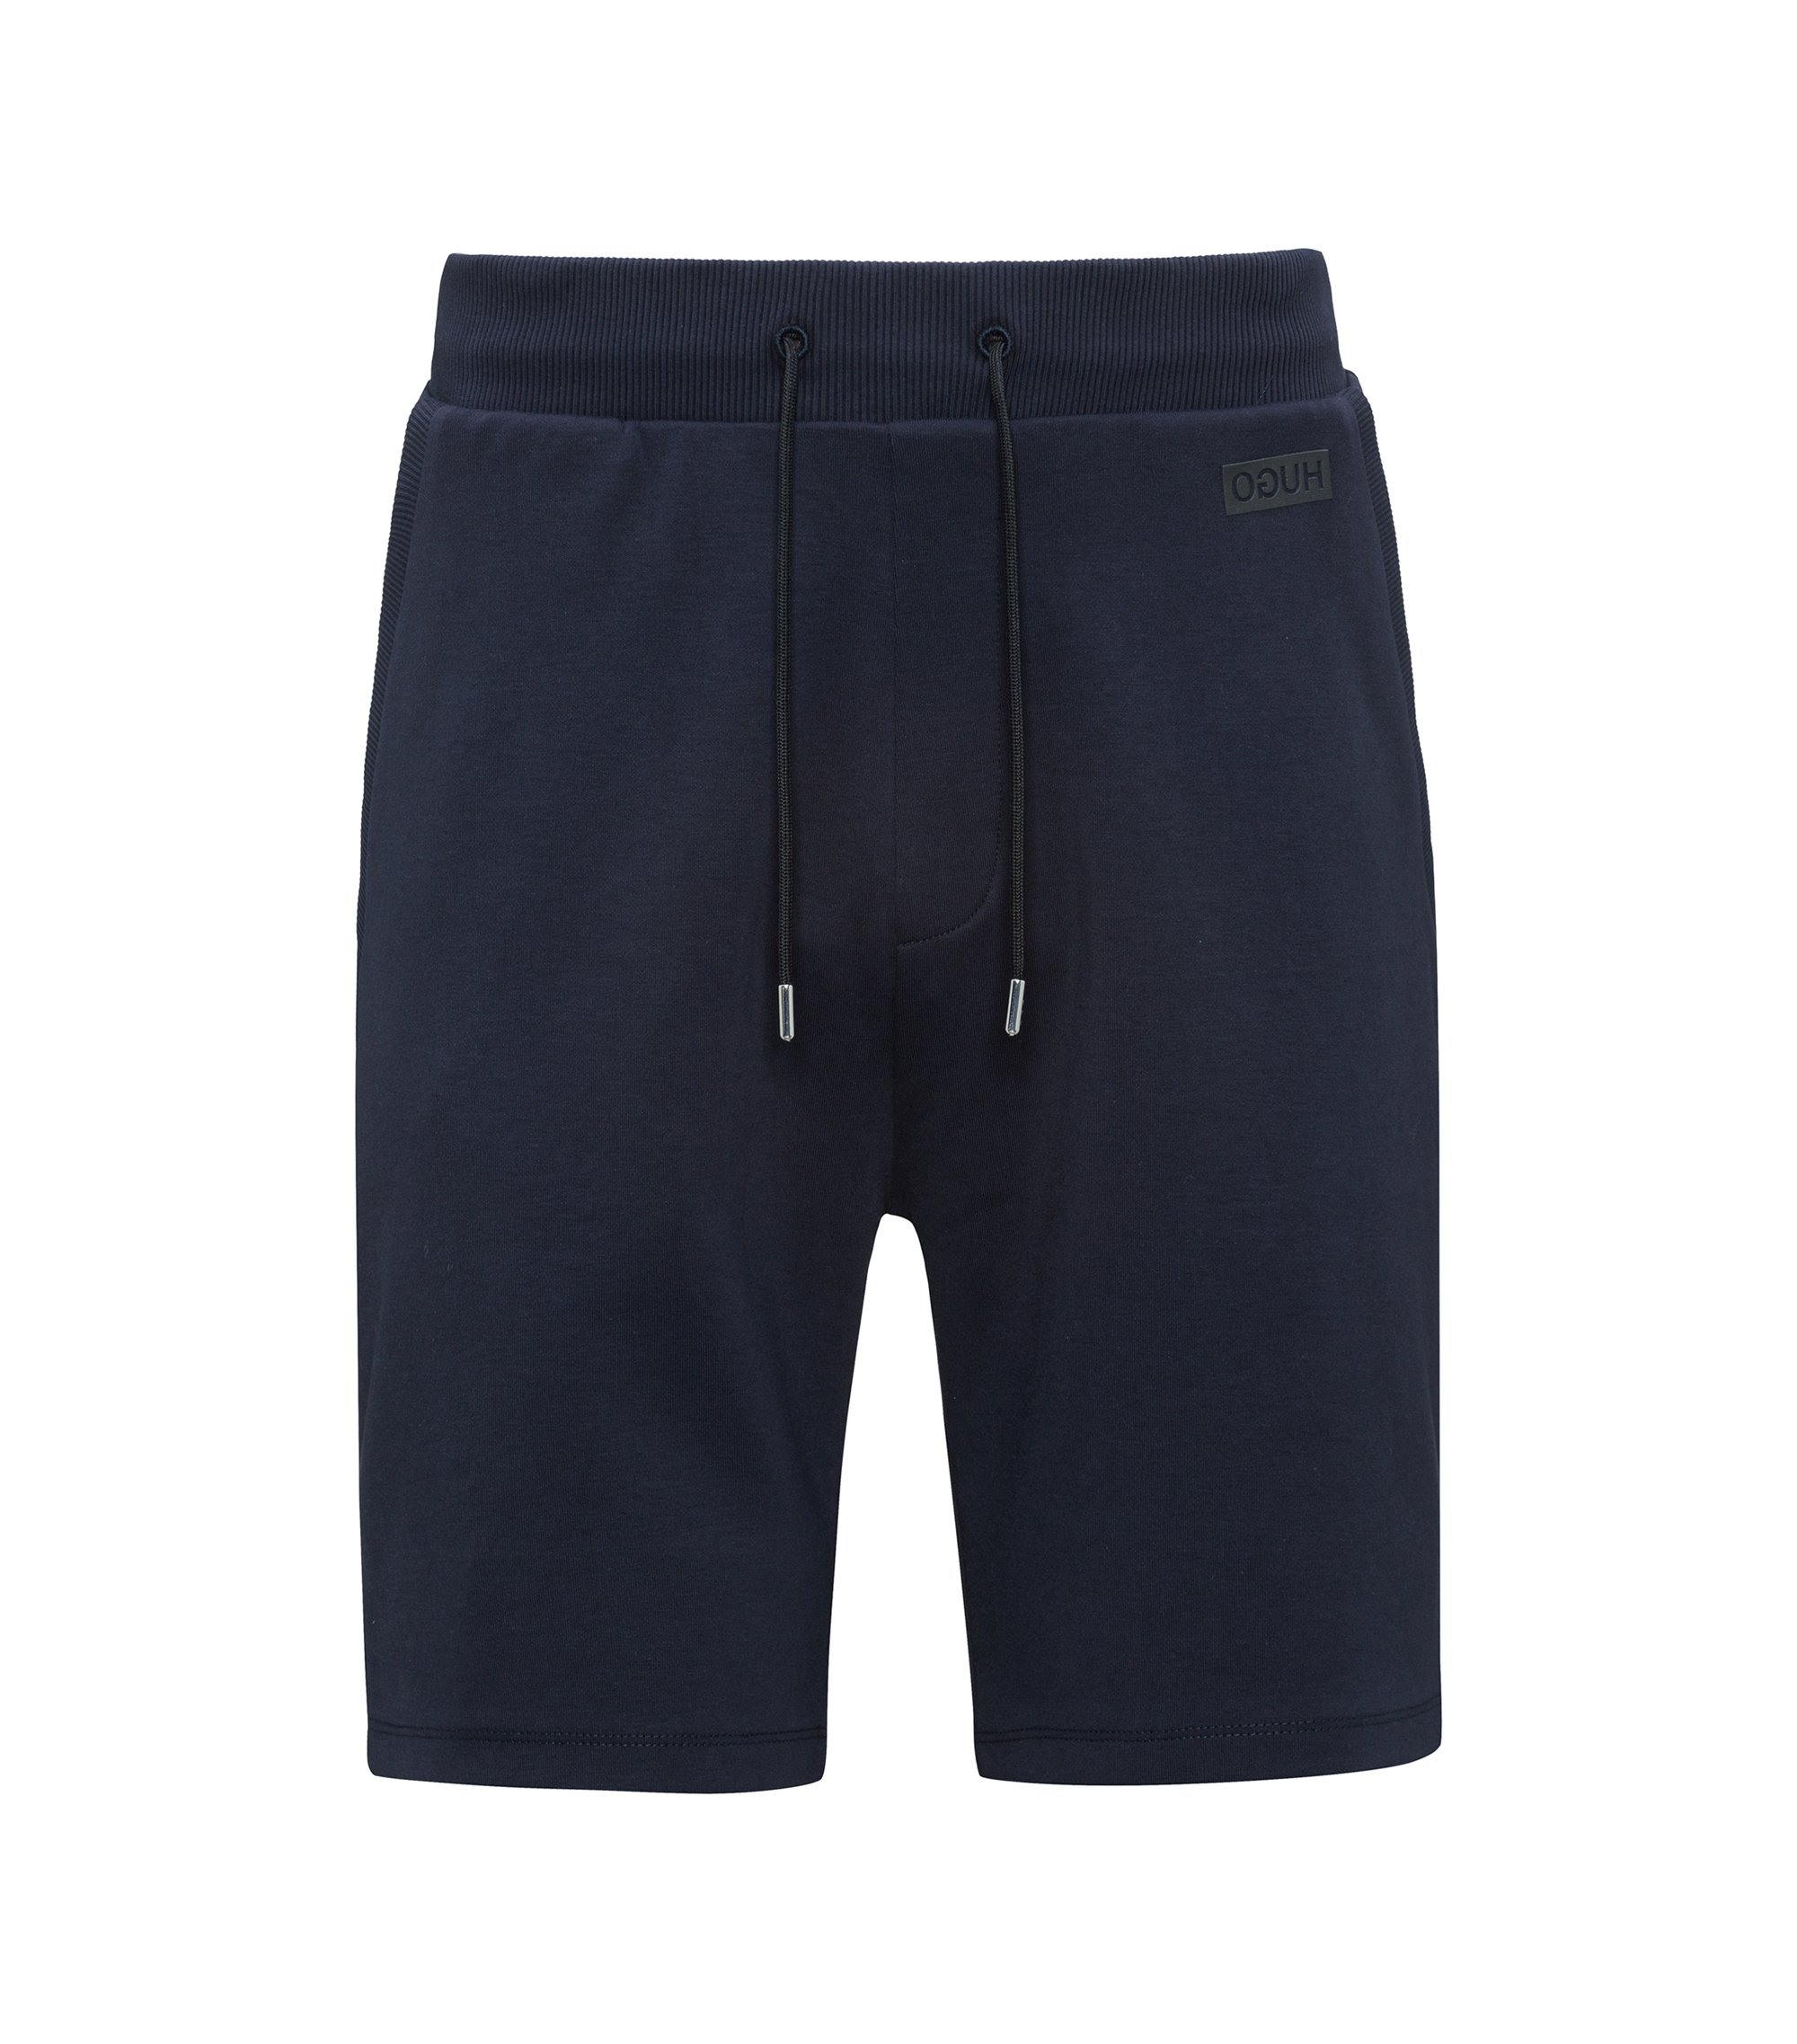 Drawstring shorts in interlock cotton, Dark Blue